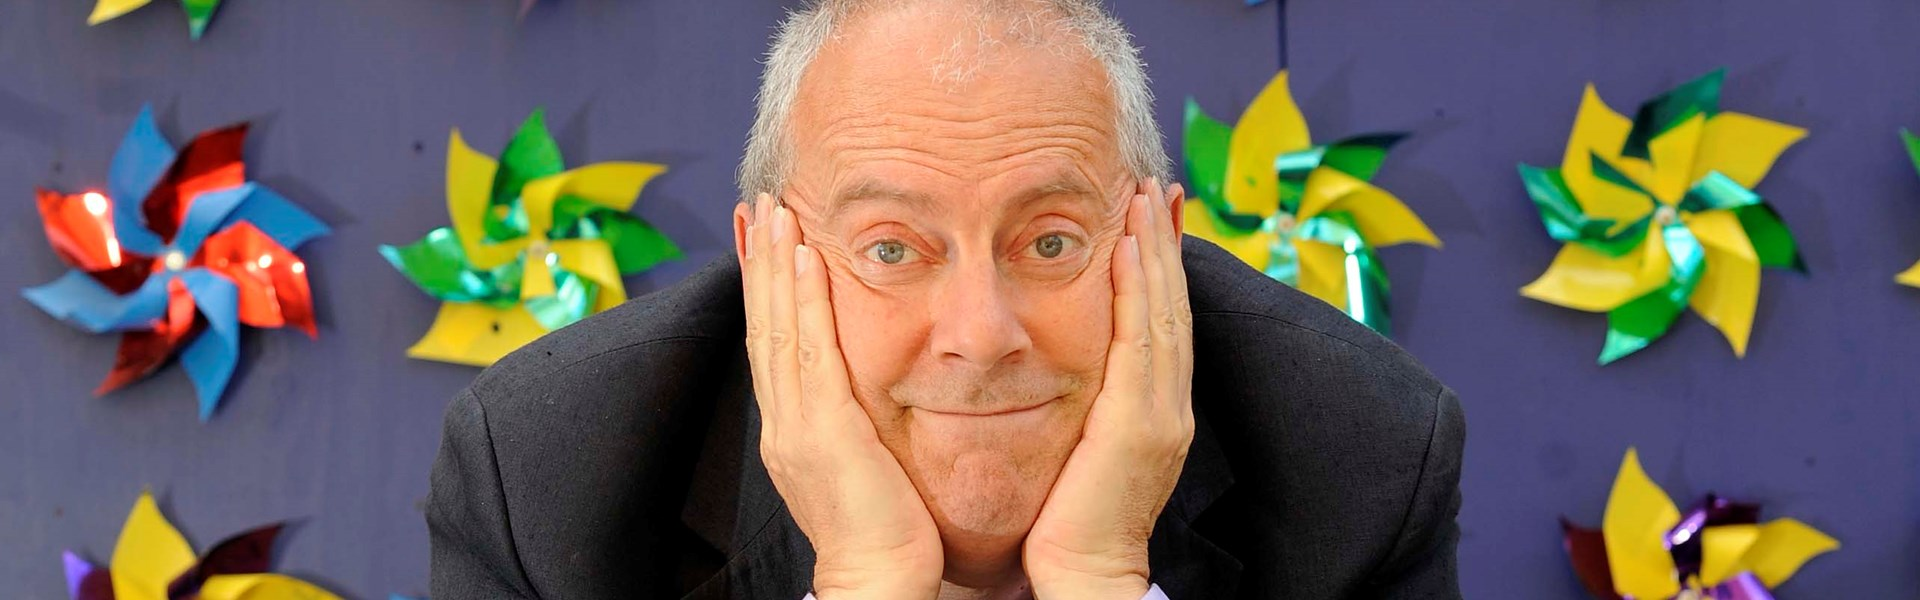 Gyles Brandreth: Dancing by the light of the moon